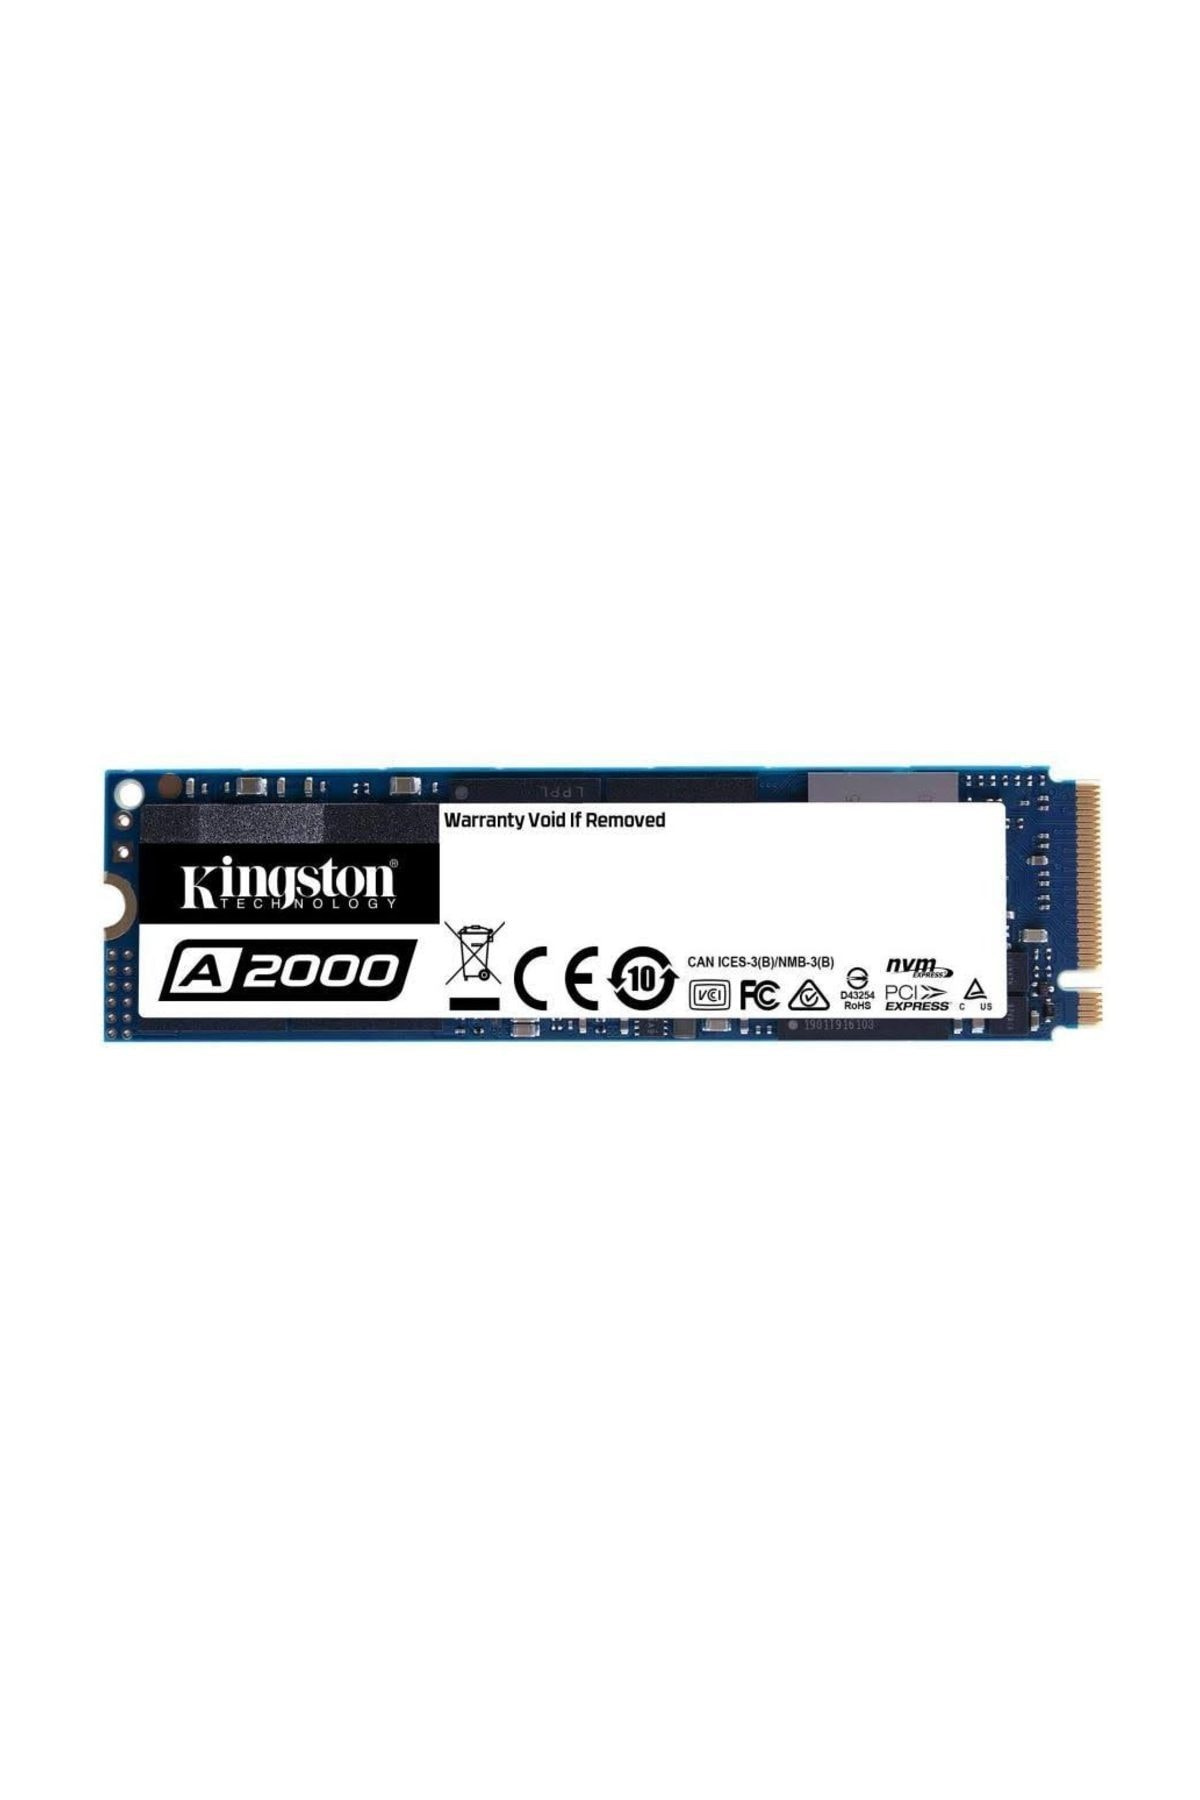 Kingston A2000 250GB 2000/1100MB/S NVMe M.2 2280 PCIe SSD (SA2000M8/250G) 2